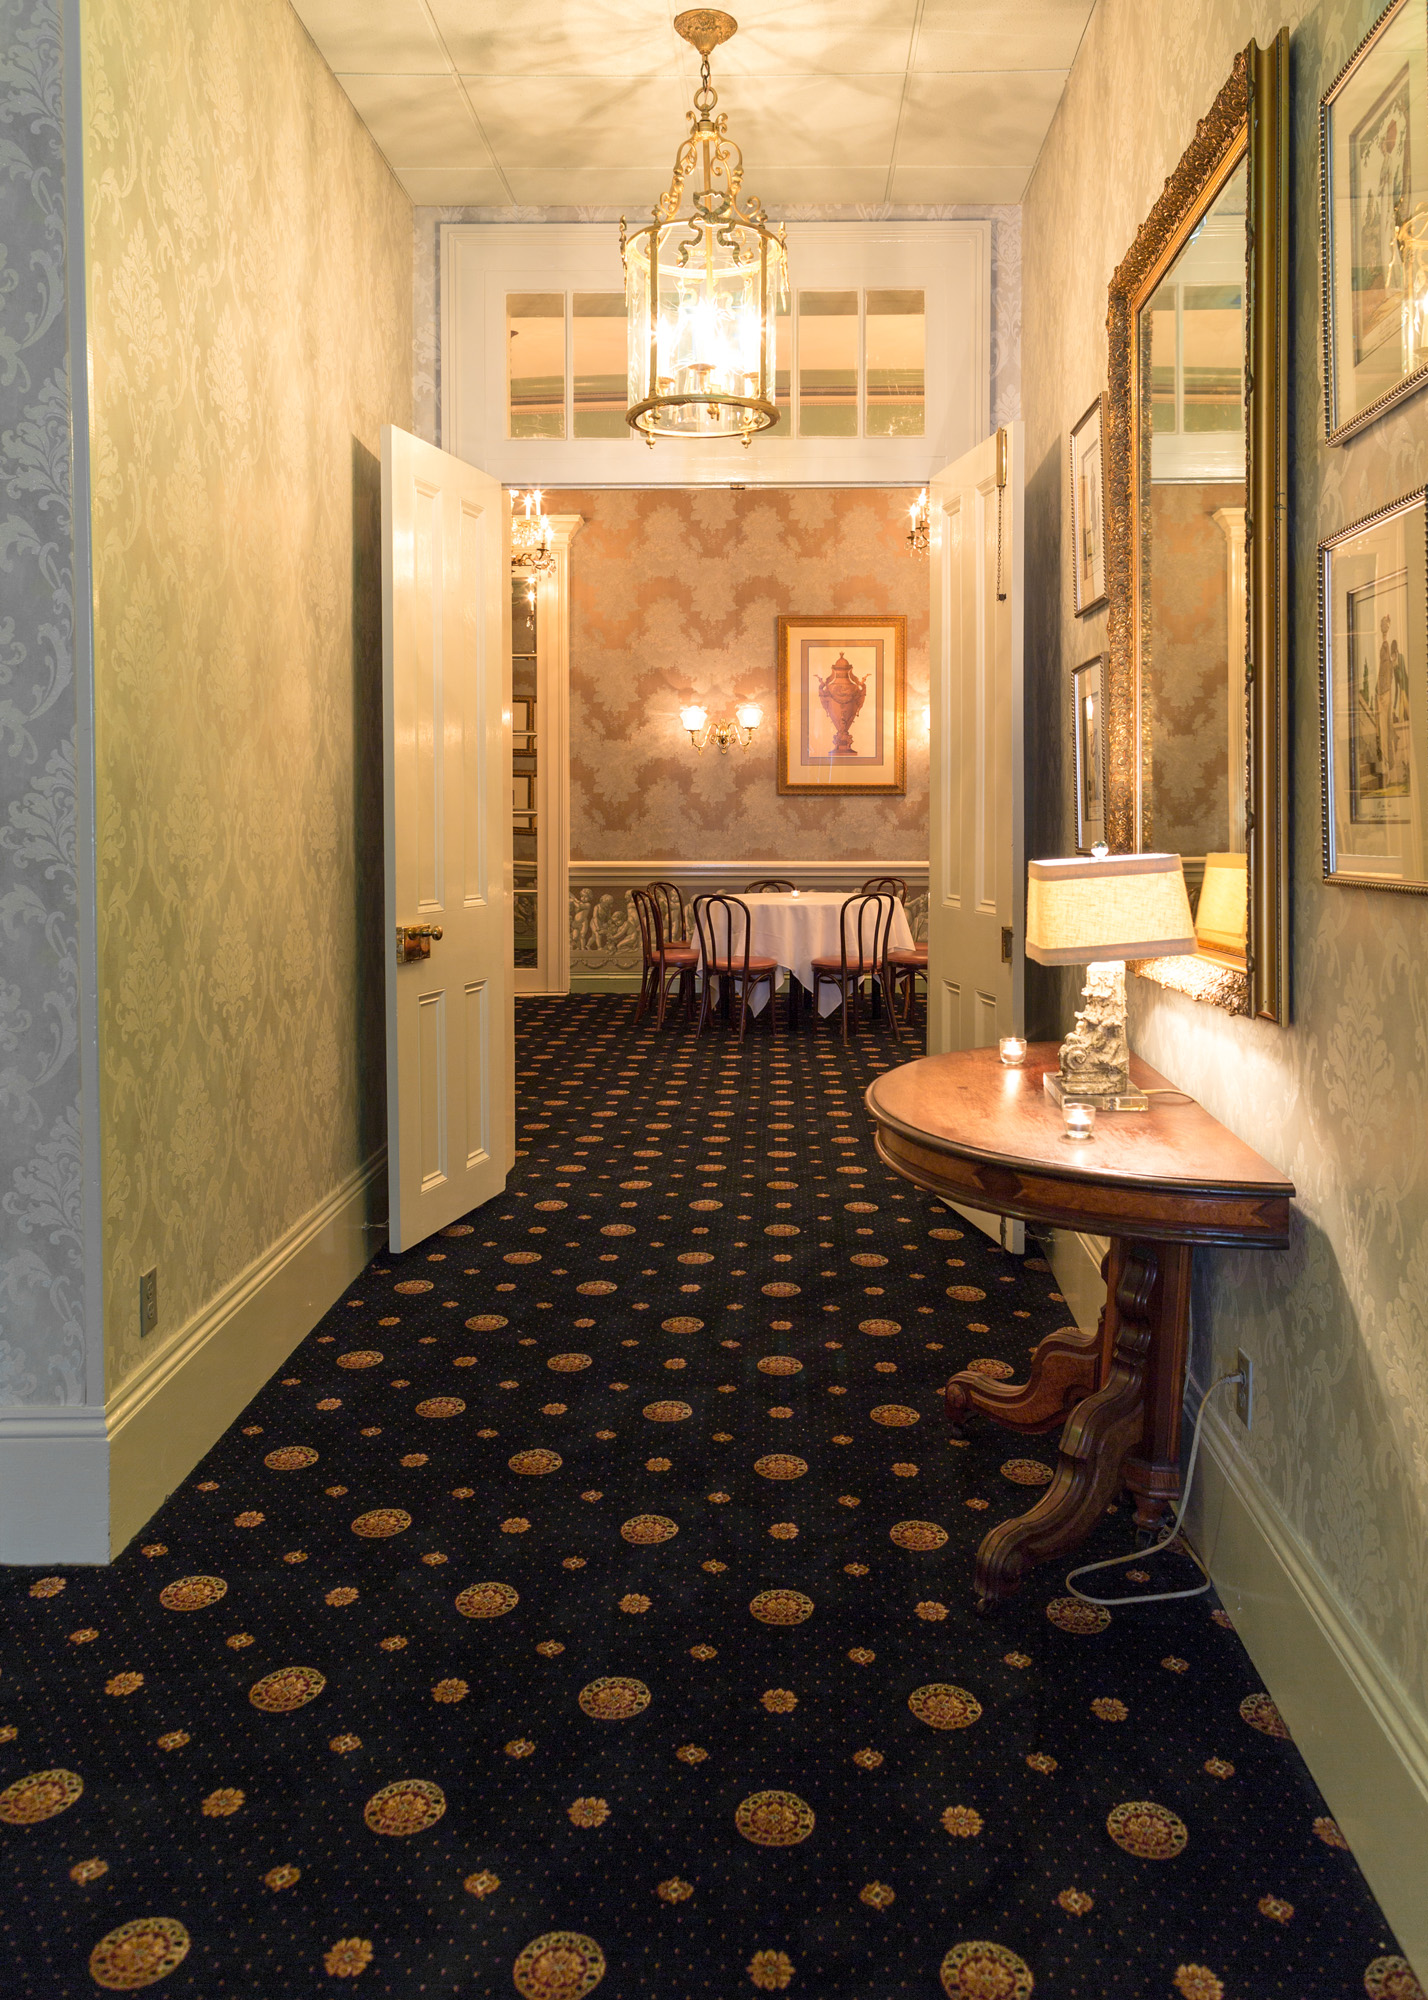 Private Dining Rooms New Orleans random attachment private dining rooms new orleans private dining rooms new orleans with well private dining rooms well collection Entrance To The Irma Room 7935